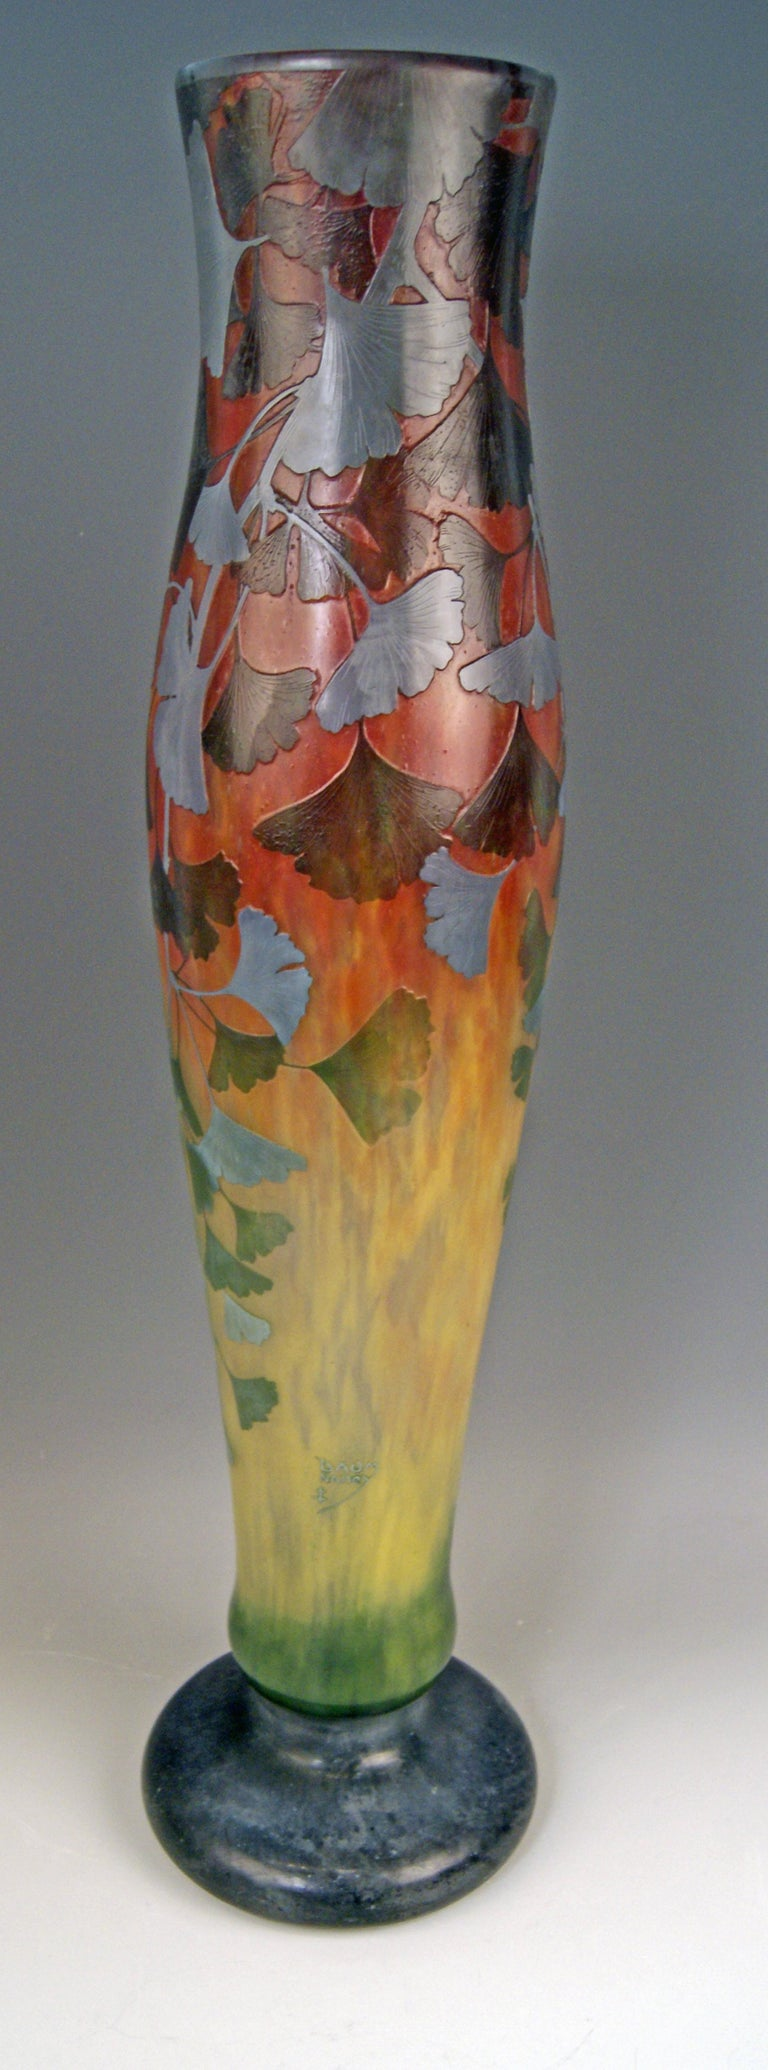 Daum Nancy Cameo Finest as well as Rarest Art Glass Stalky Vase of Art Nouveau Period. Excellently decorated with interesting patterns: These are gingko leaves !  Manufactory:Daum Frères / made in France (Nancy, Lorraine), circa 1900.